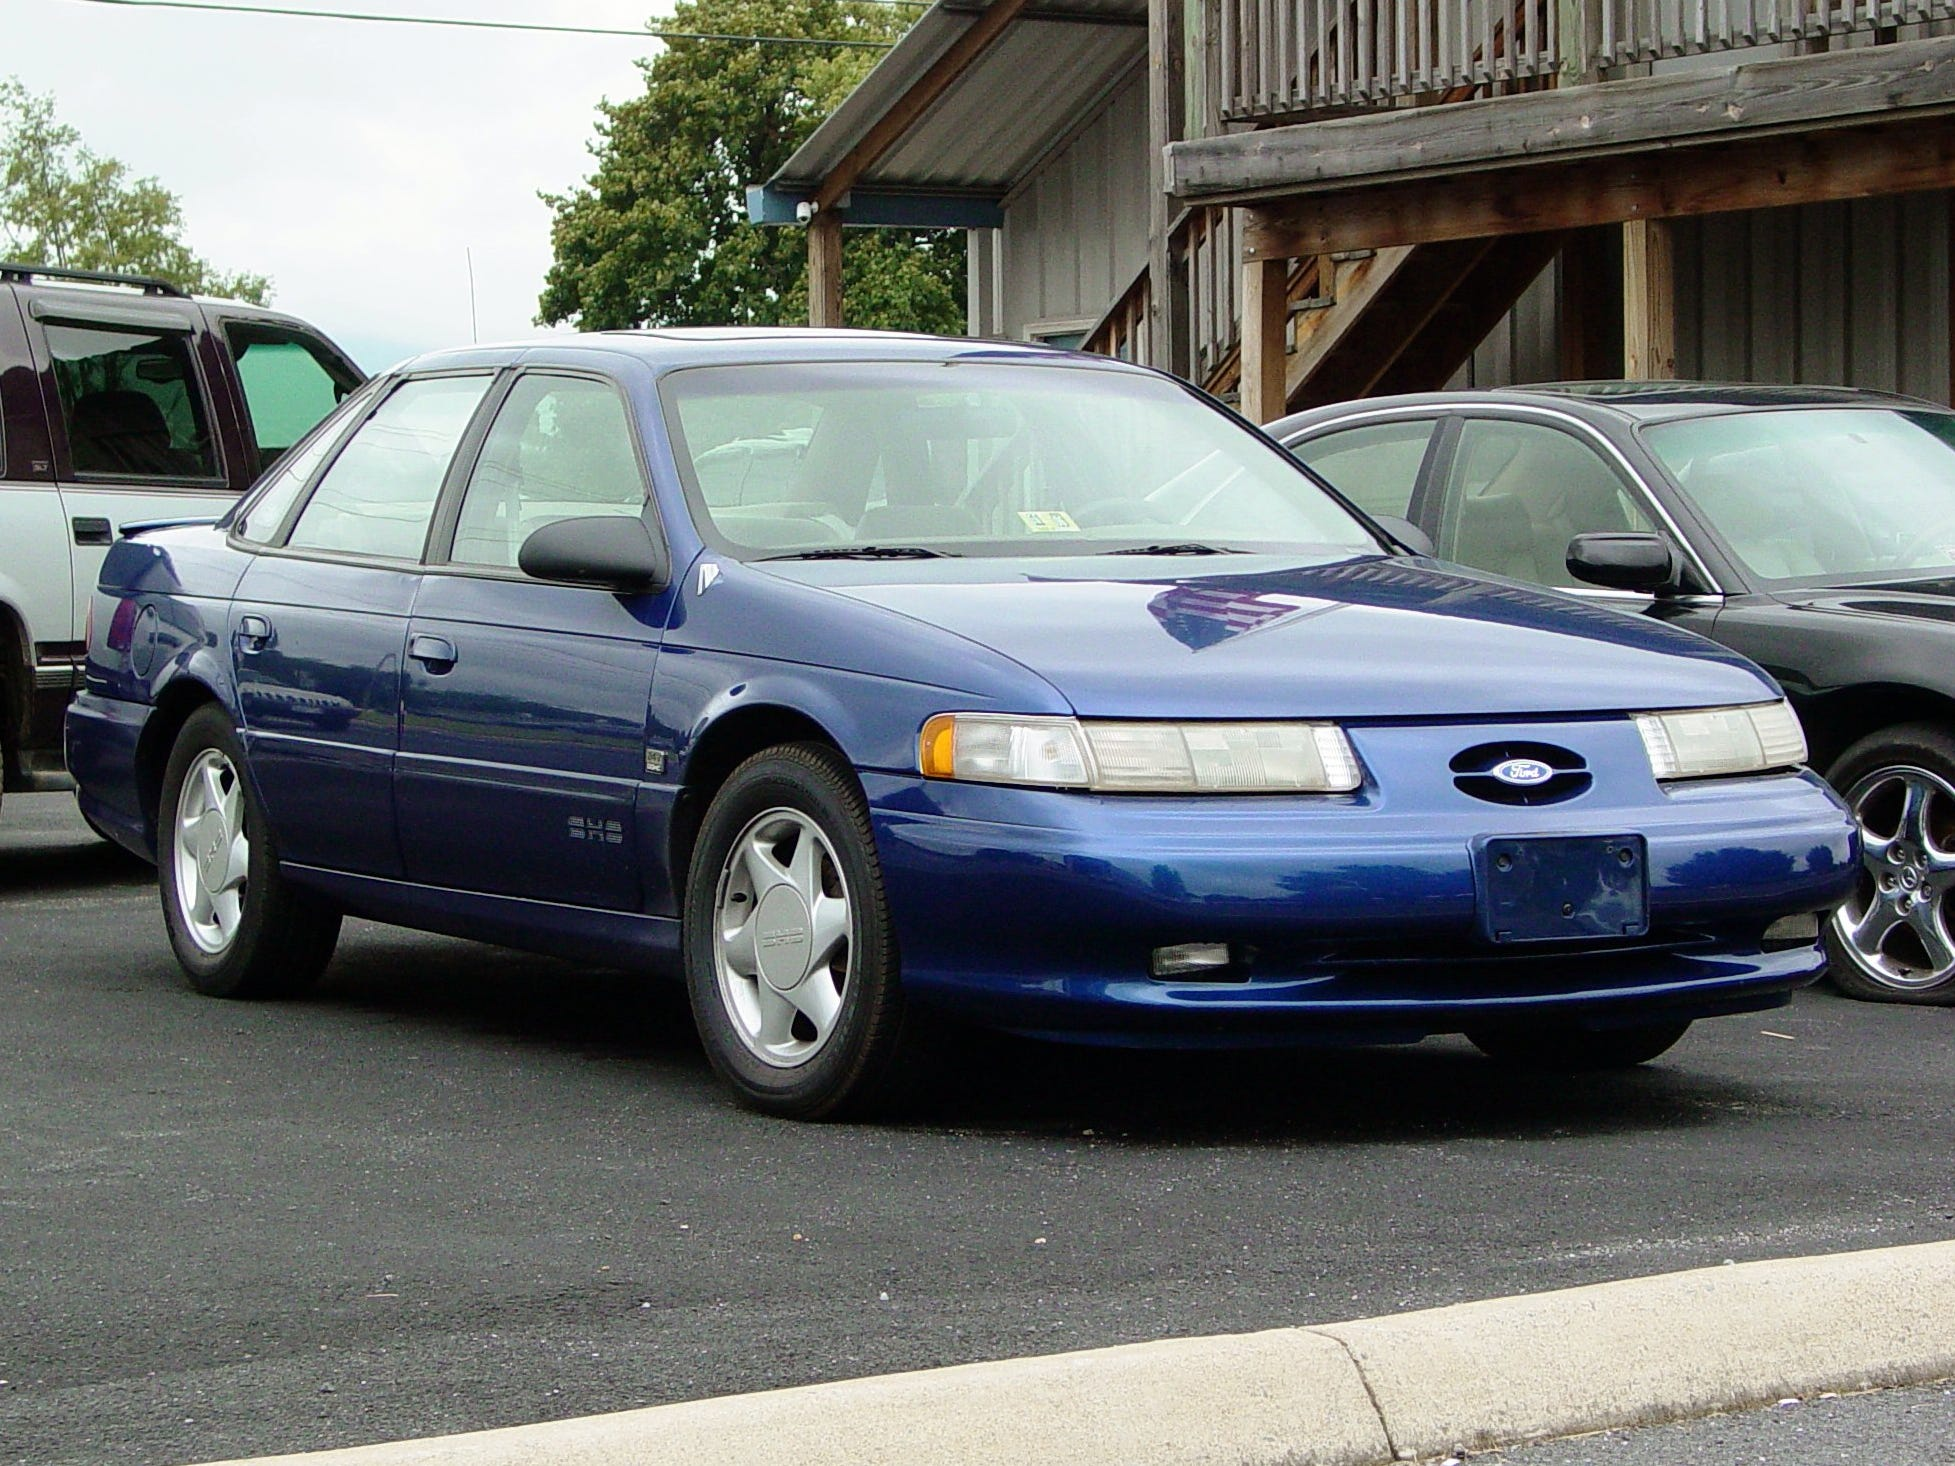 The last purist's SHO (short for Super High Output), the 1992 Ford Taurus no longer was offered exclusively as a manual. It now came in automatic, too.  Ford stuffed the engine bay with a snorting 220-horse, Yamaha-developed V-6 that hit 60 mph in less than seven seconds.